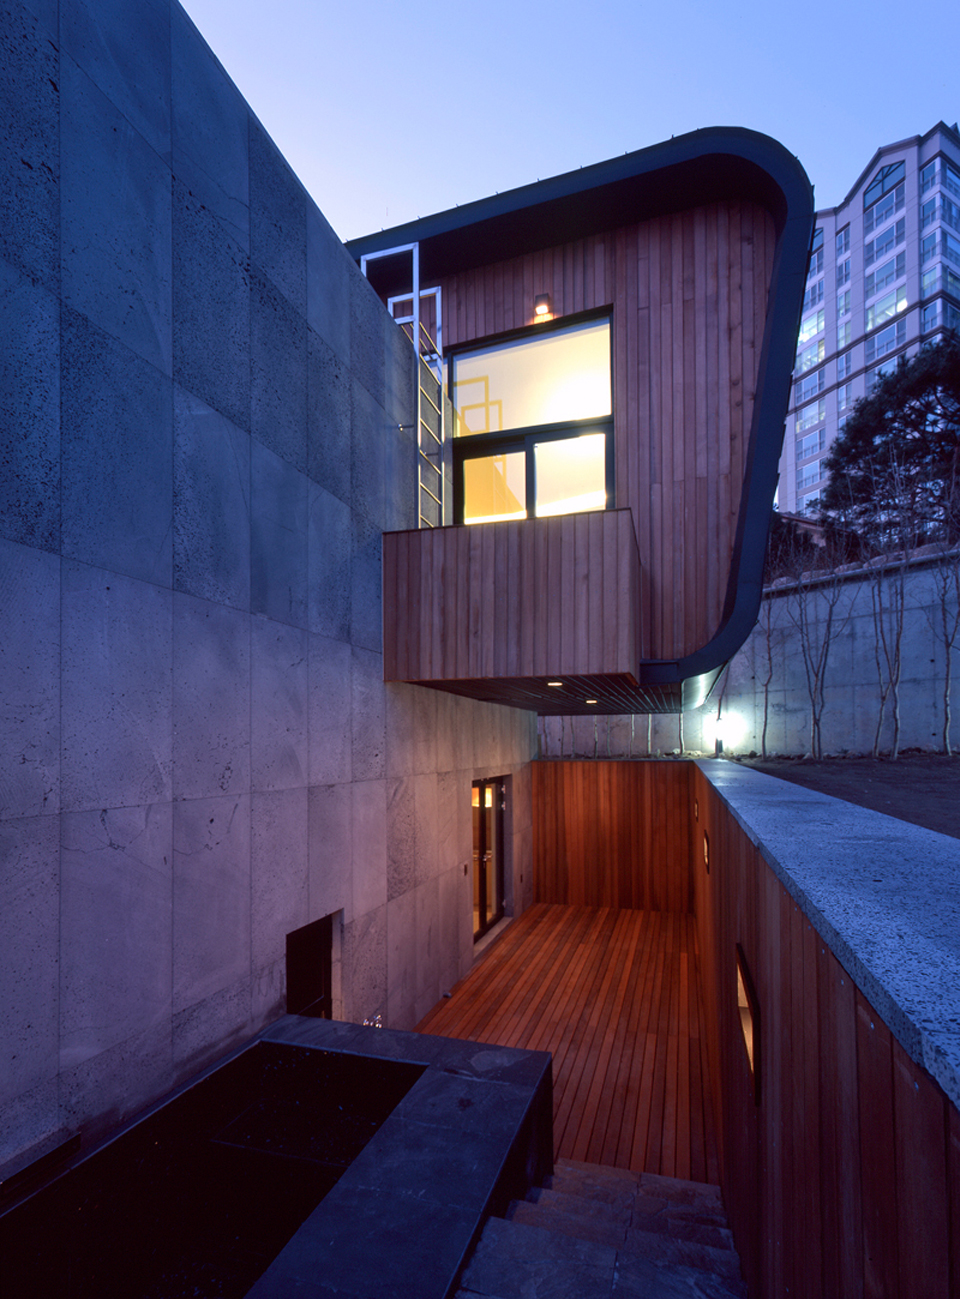 06_zhouse_exterior_img08